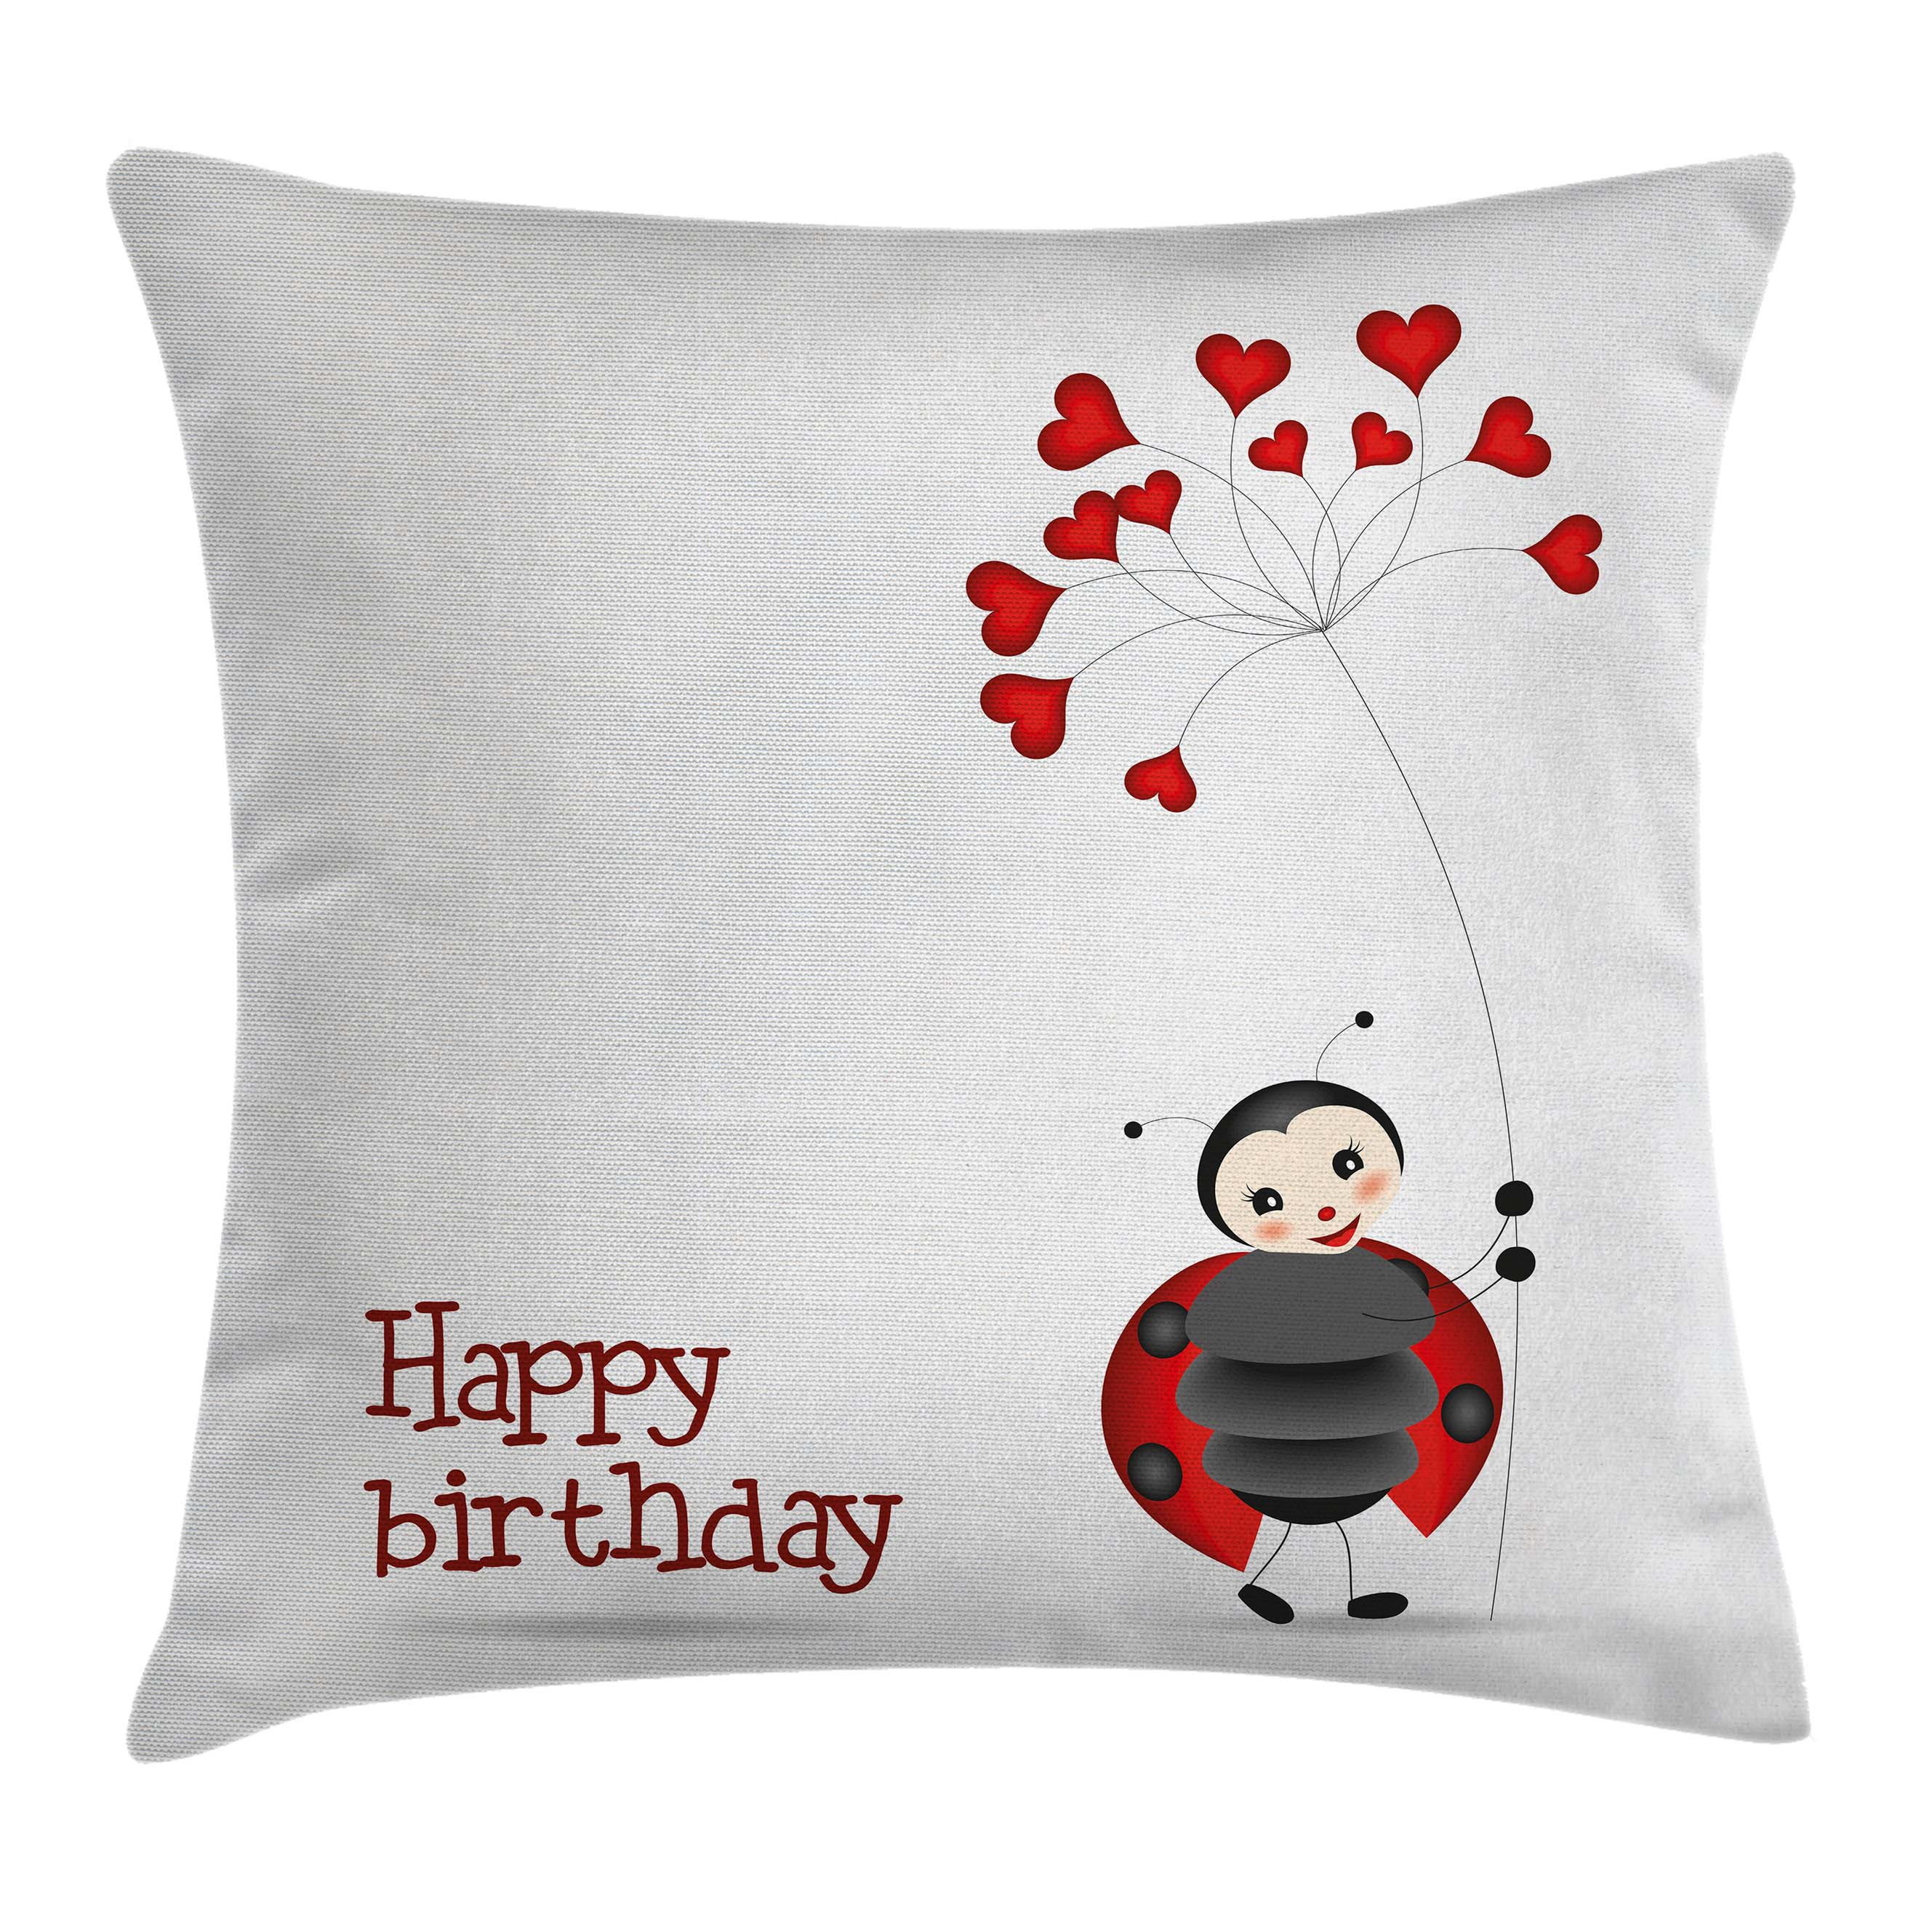 Birthday Decorations for Kids Throw Pillow Cushion Cover, Ladybug Wings Flower Inspired Heart Shaped Balloons, Decorative Square Accent Pillow Case, 16 X 16 Inches, Red Black and White, by Ambesonne